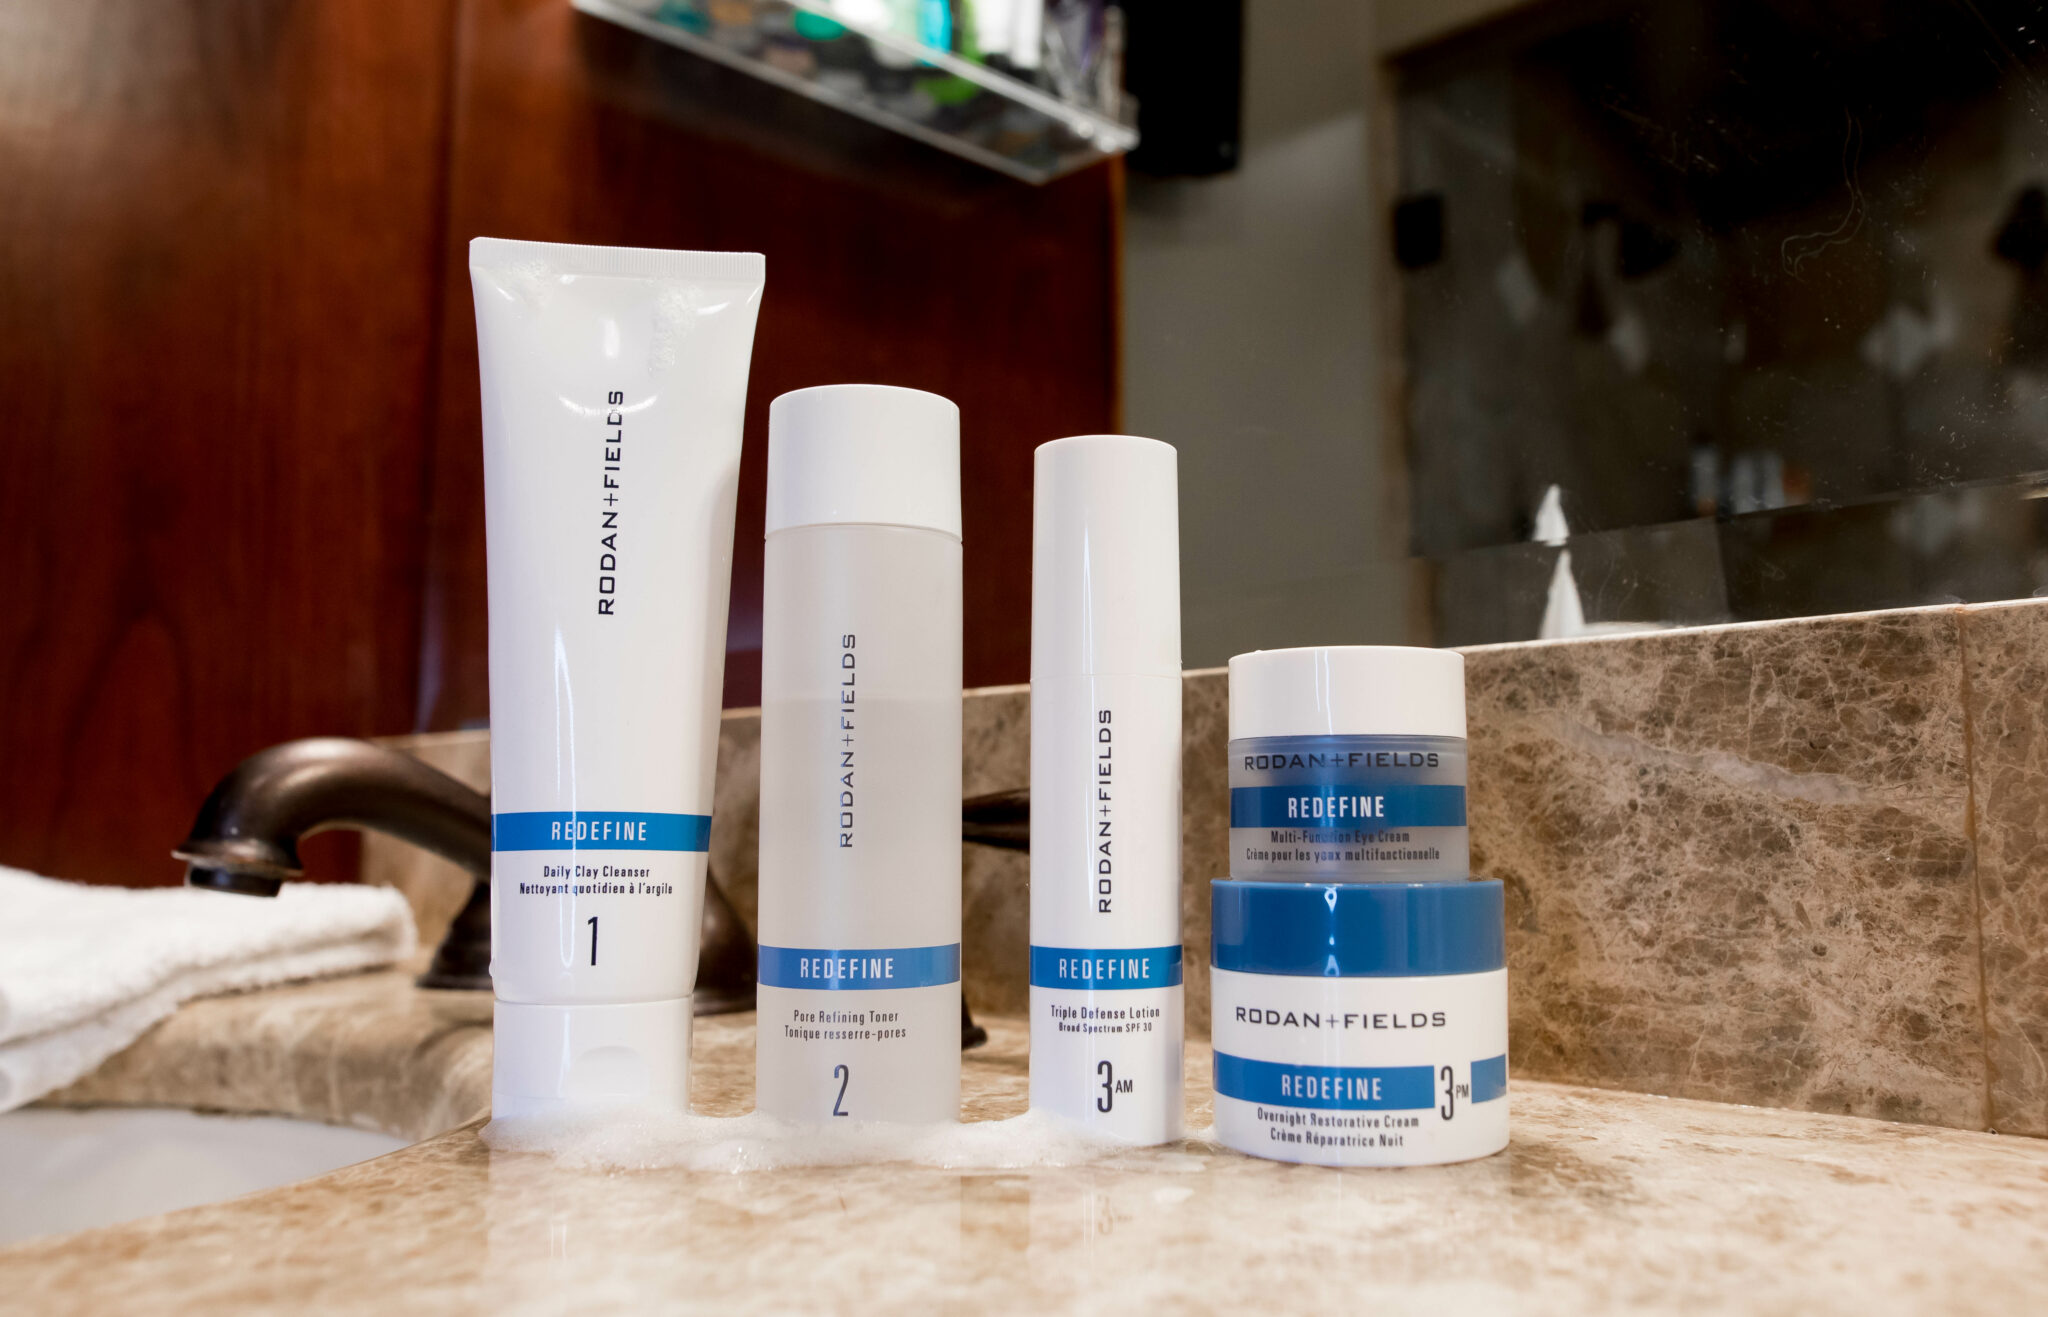 Rodan and Fields Redefine Regimen by popular Chicago beauty blog, Glass of Glam: image of the Rodan and Fields Redefine regimen products.